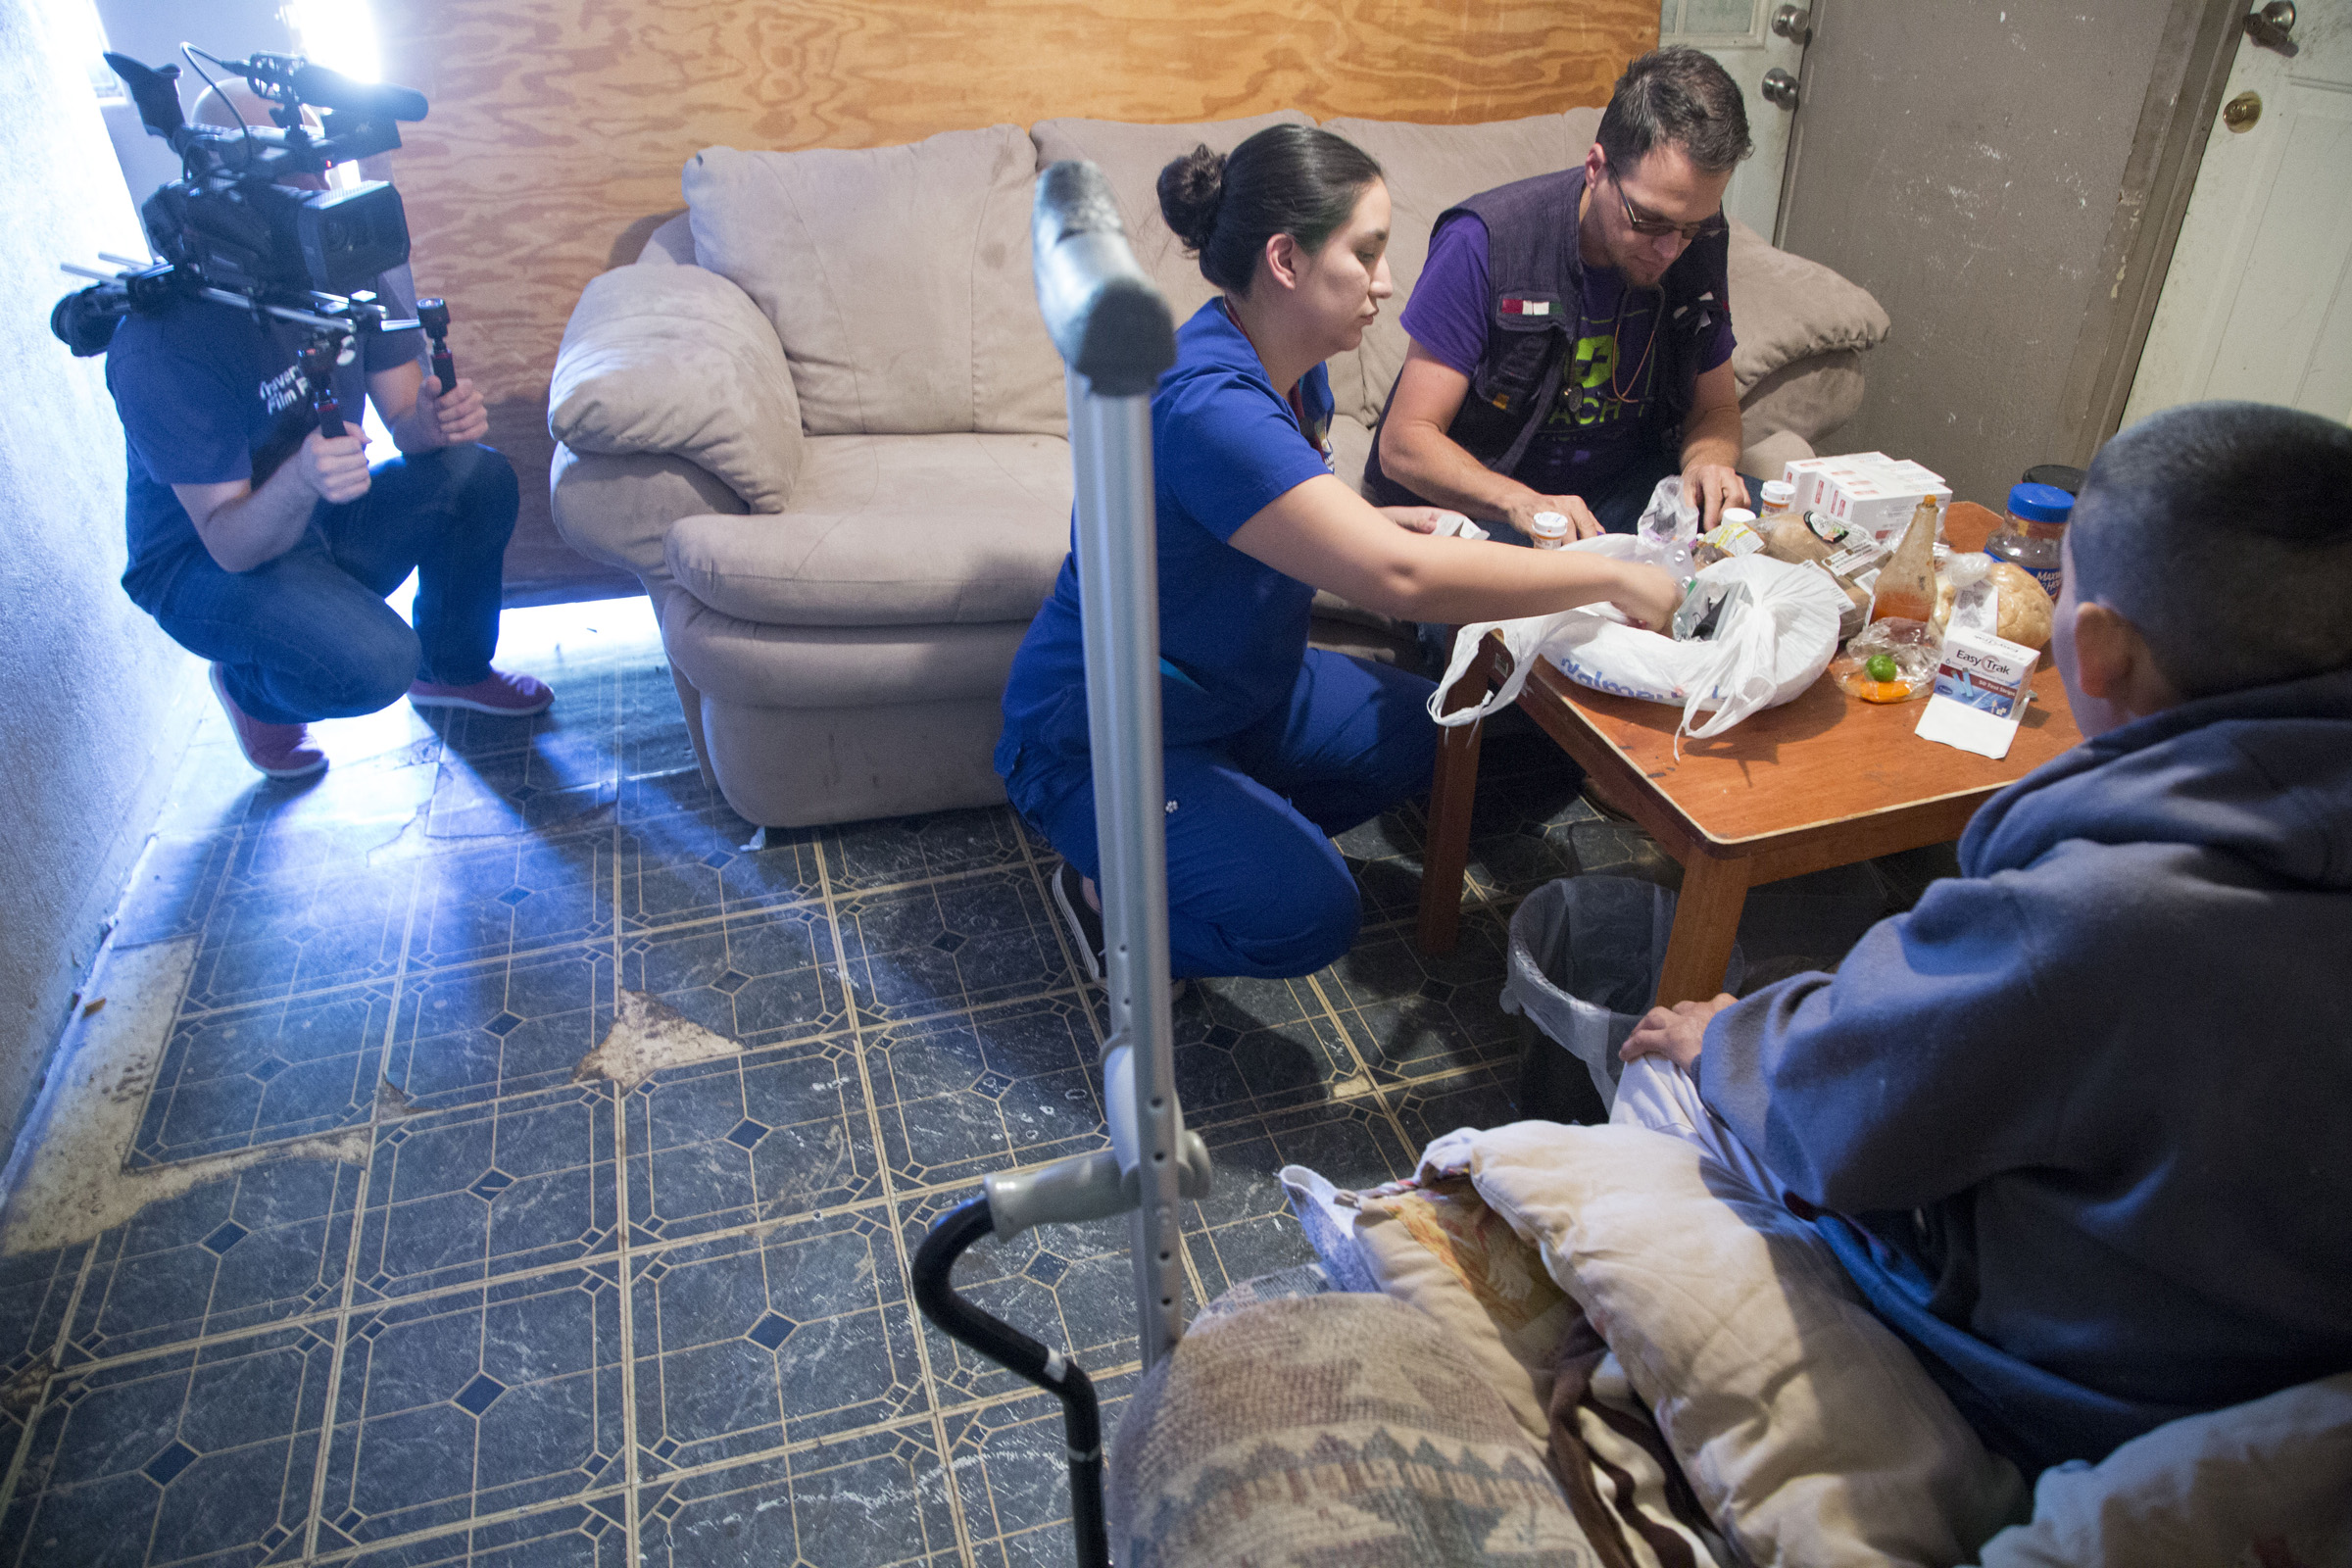 Courtesy of Nick Oza, this picture captures nurses Jason Odhner and Maria Haley on a home visit with a diabetic patient.